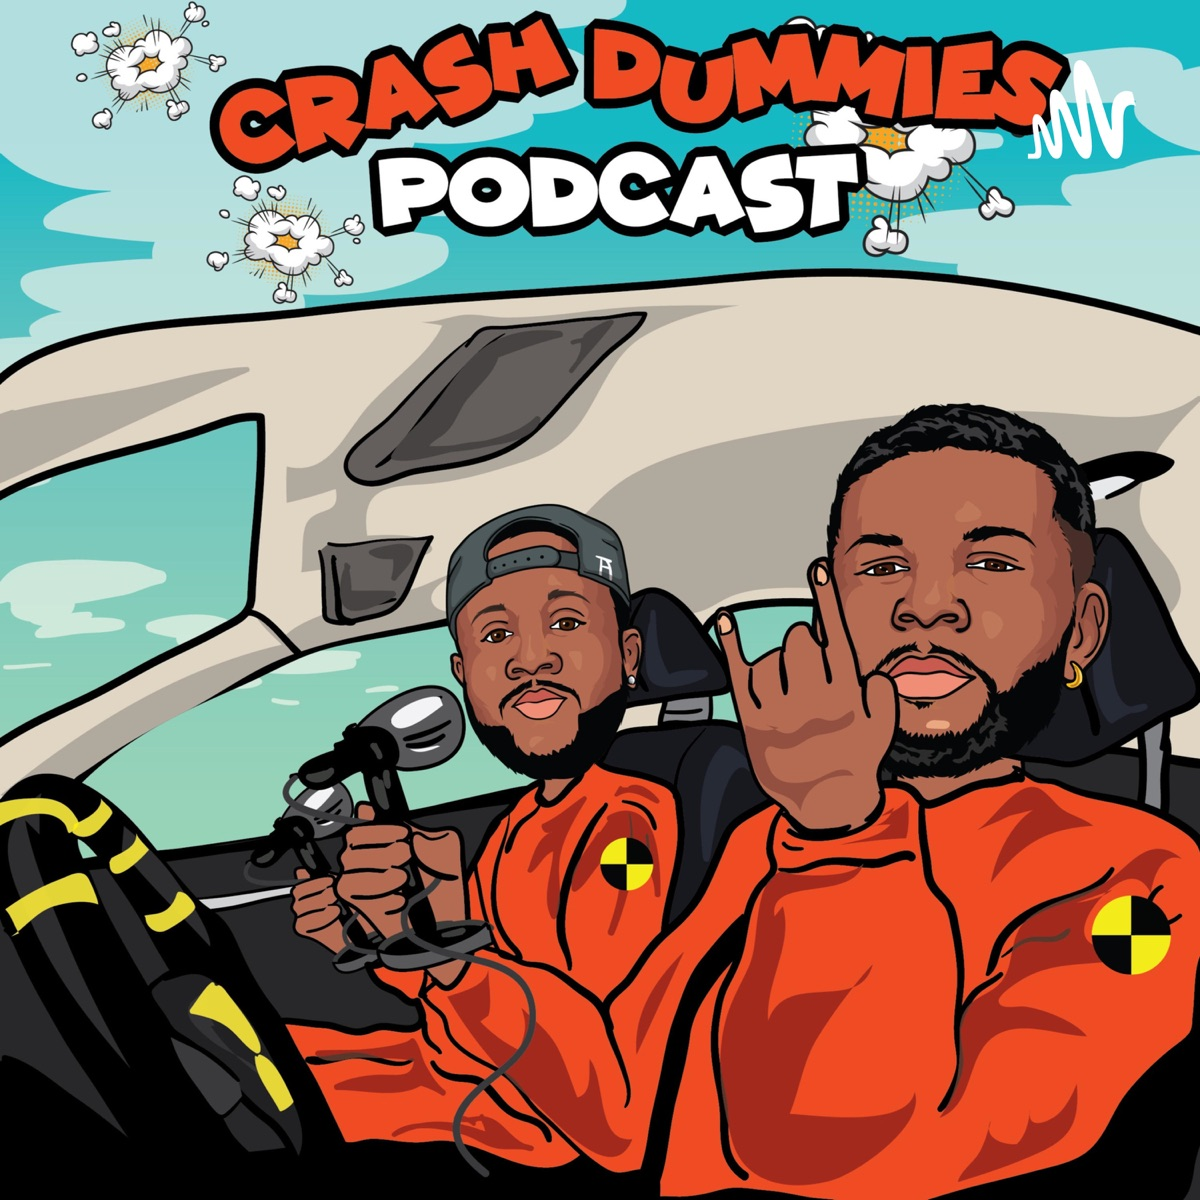 Crash Dummies Podcast with Pat and Mike